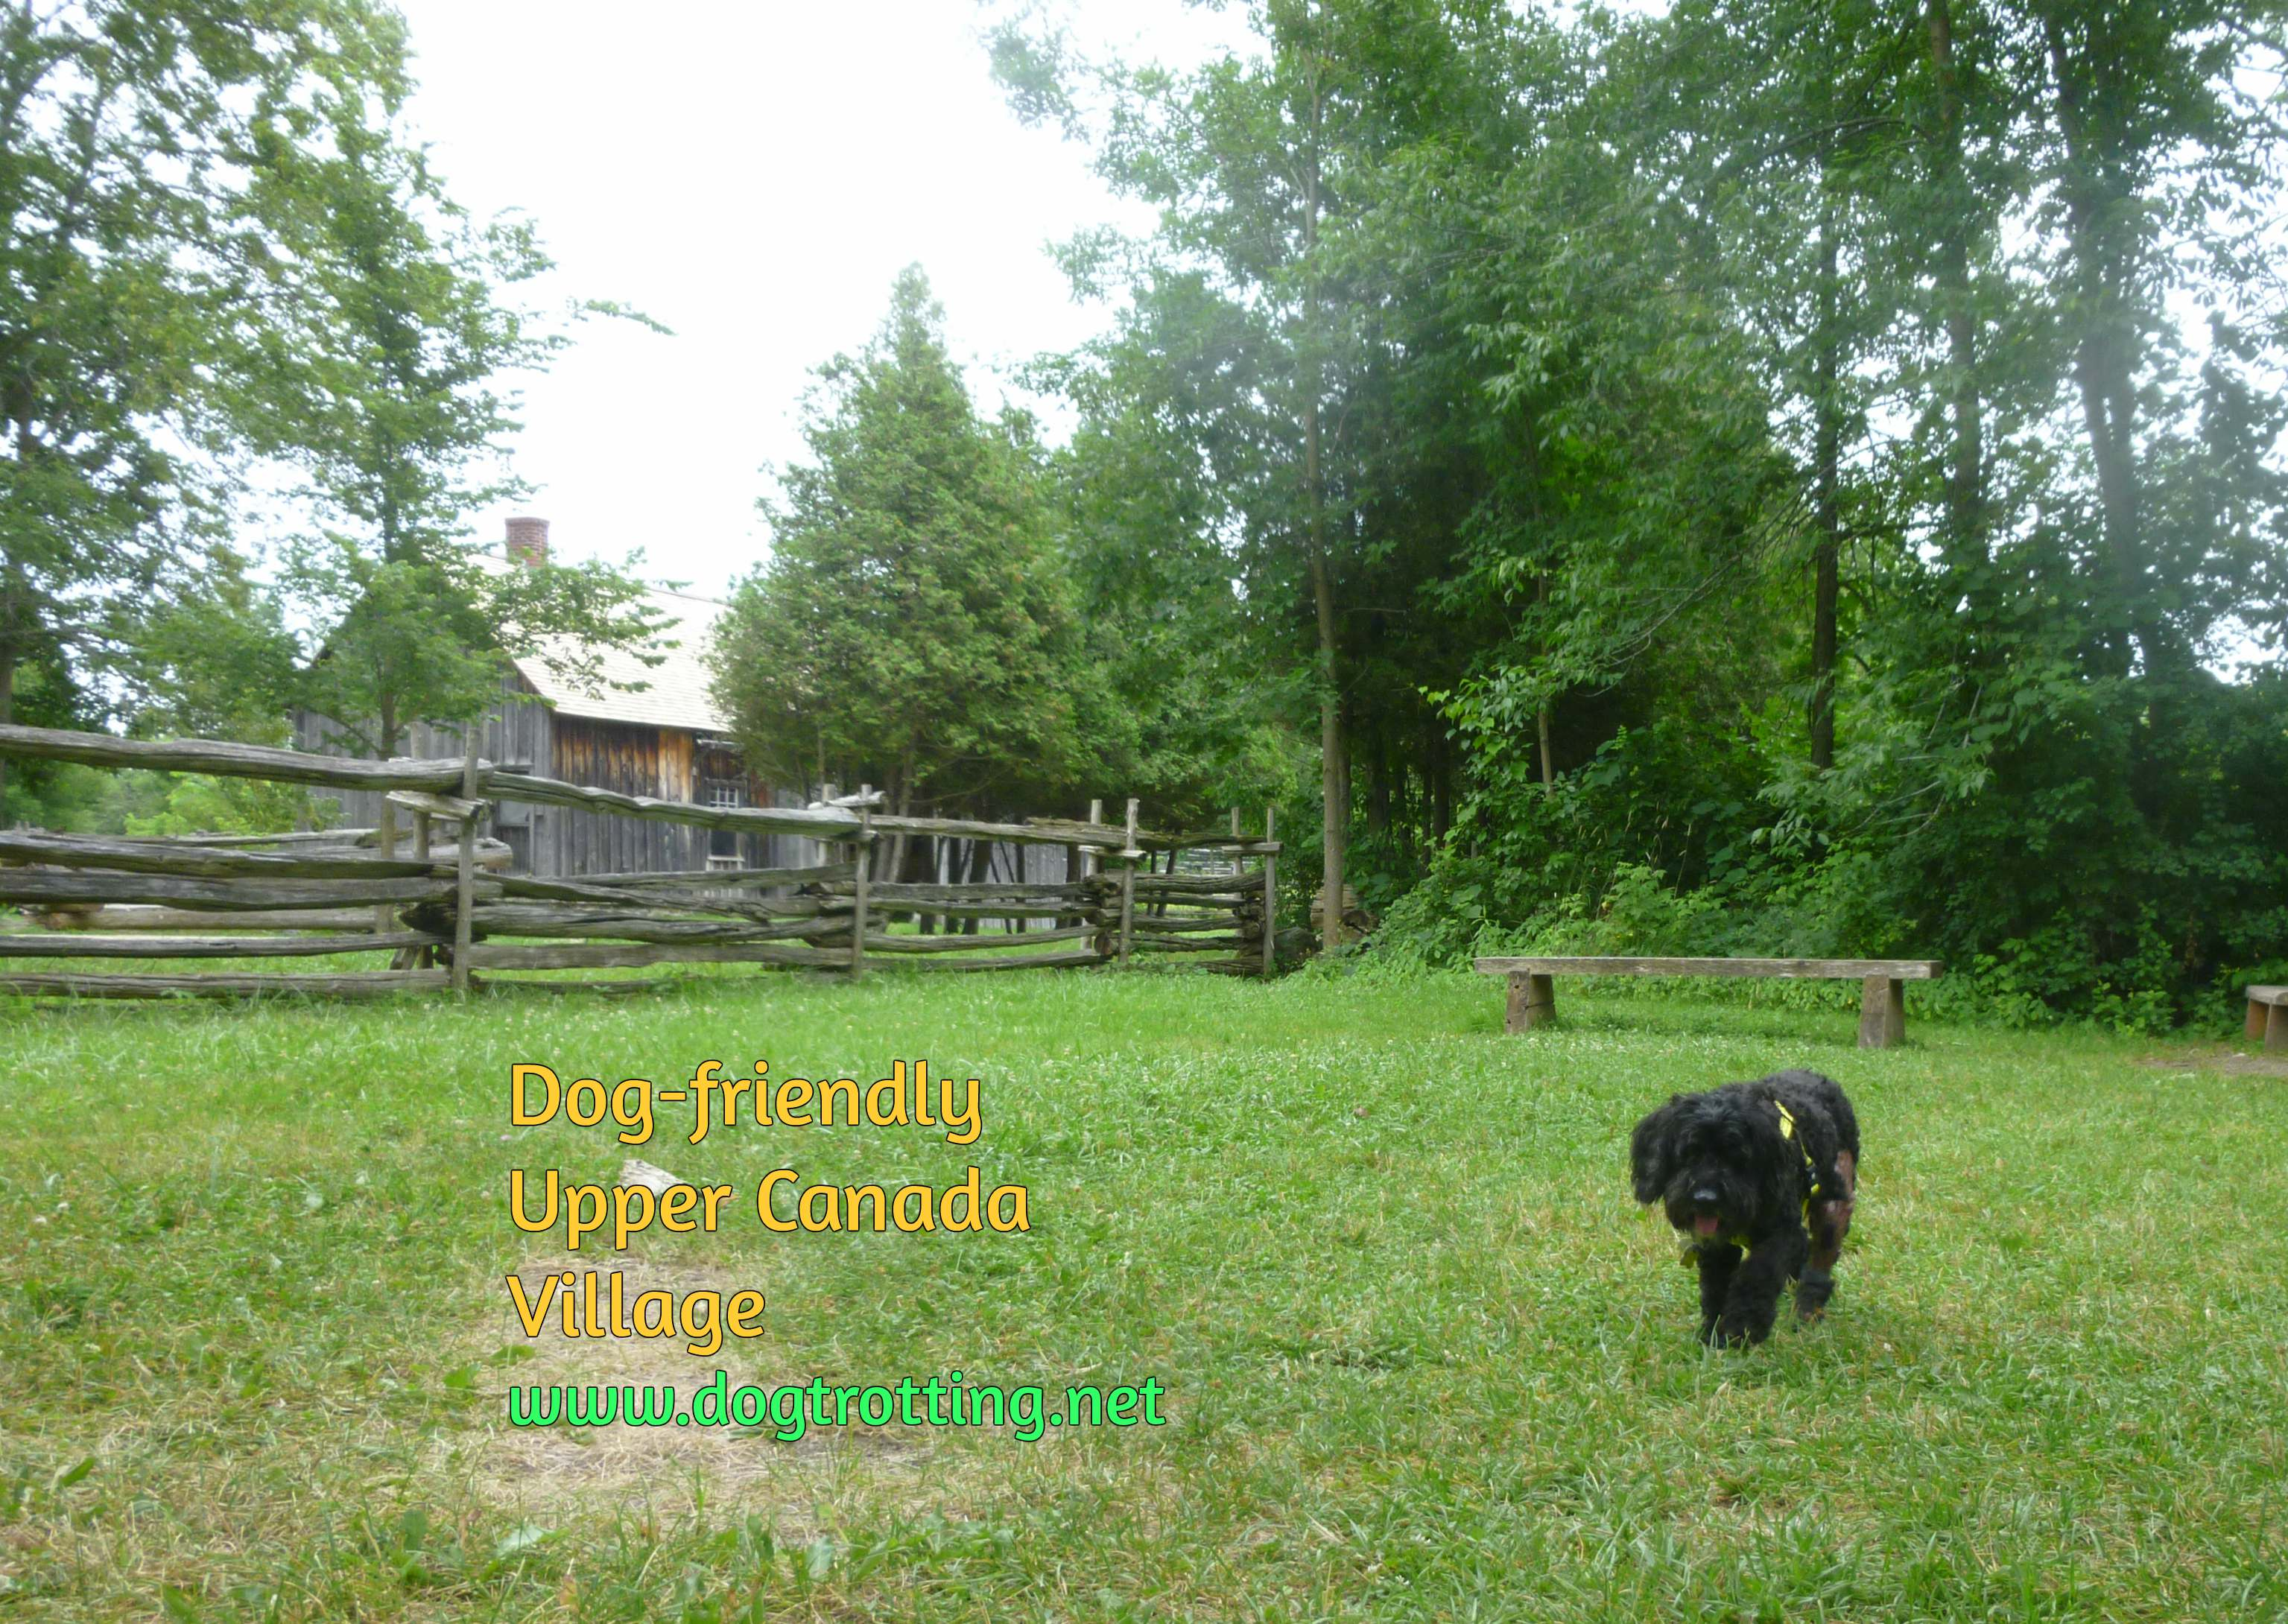 dog at dog-friendly Upper Canada Village